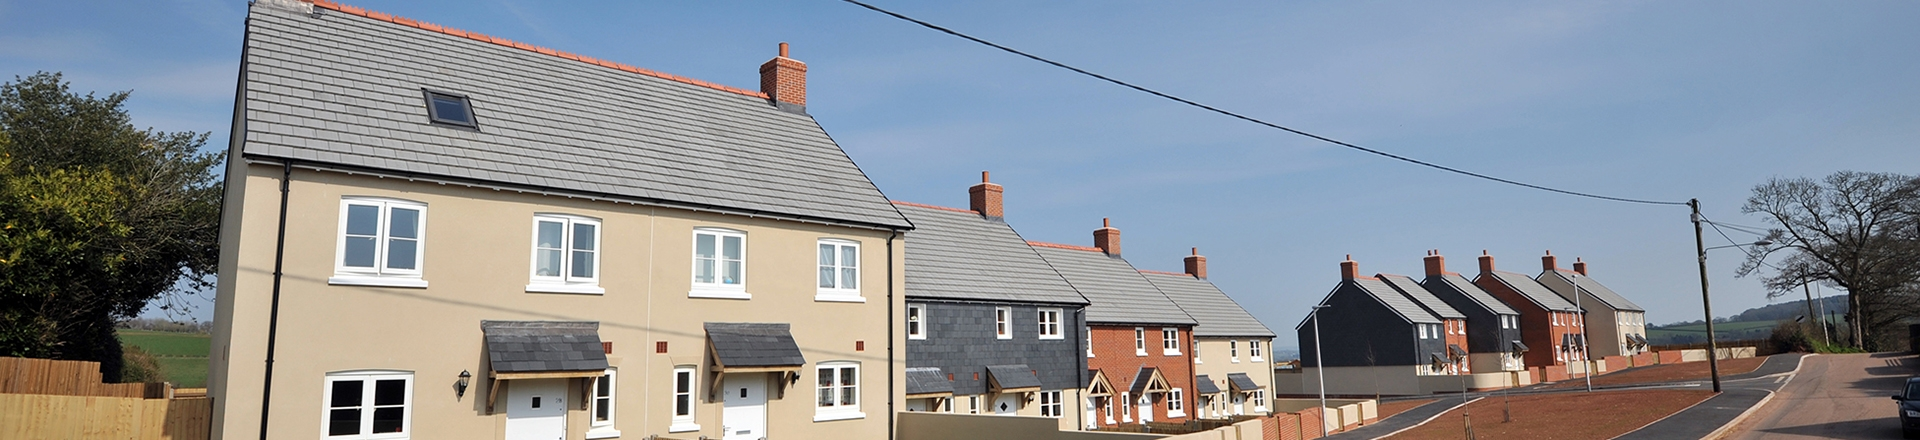 Homes in Bradninch Exeter